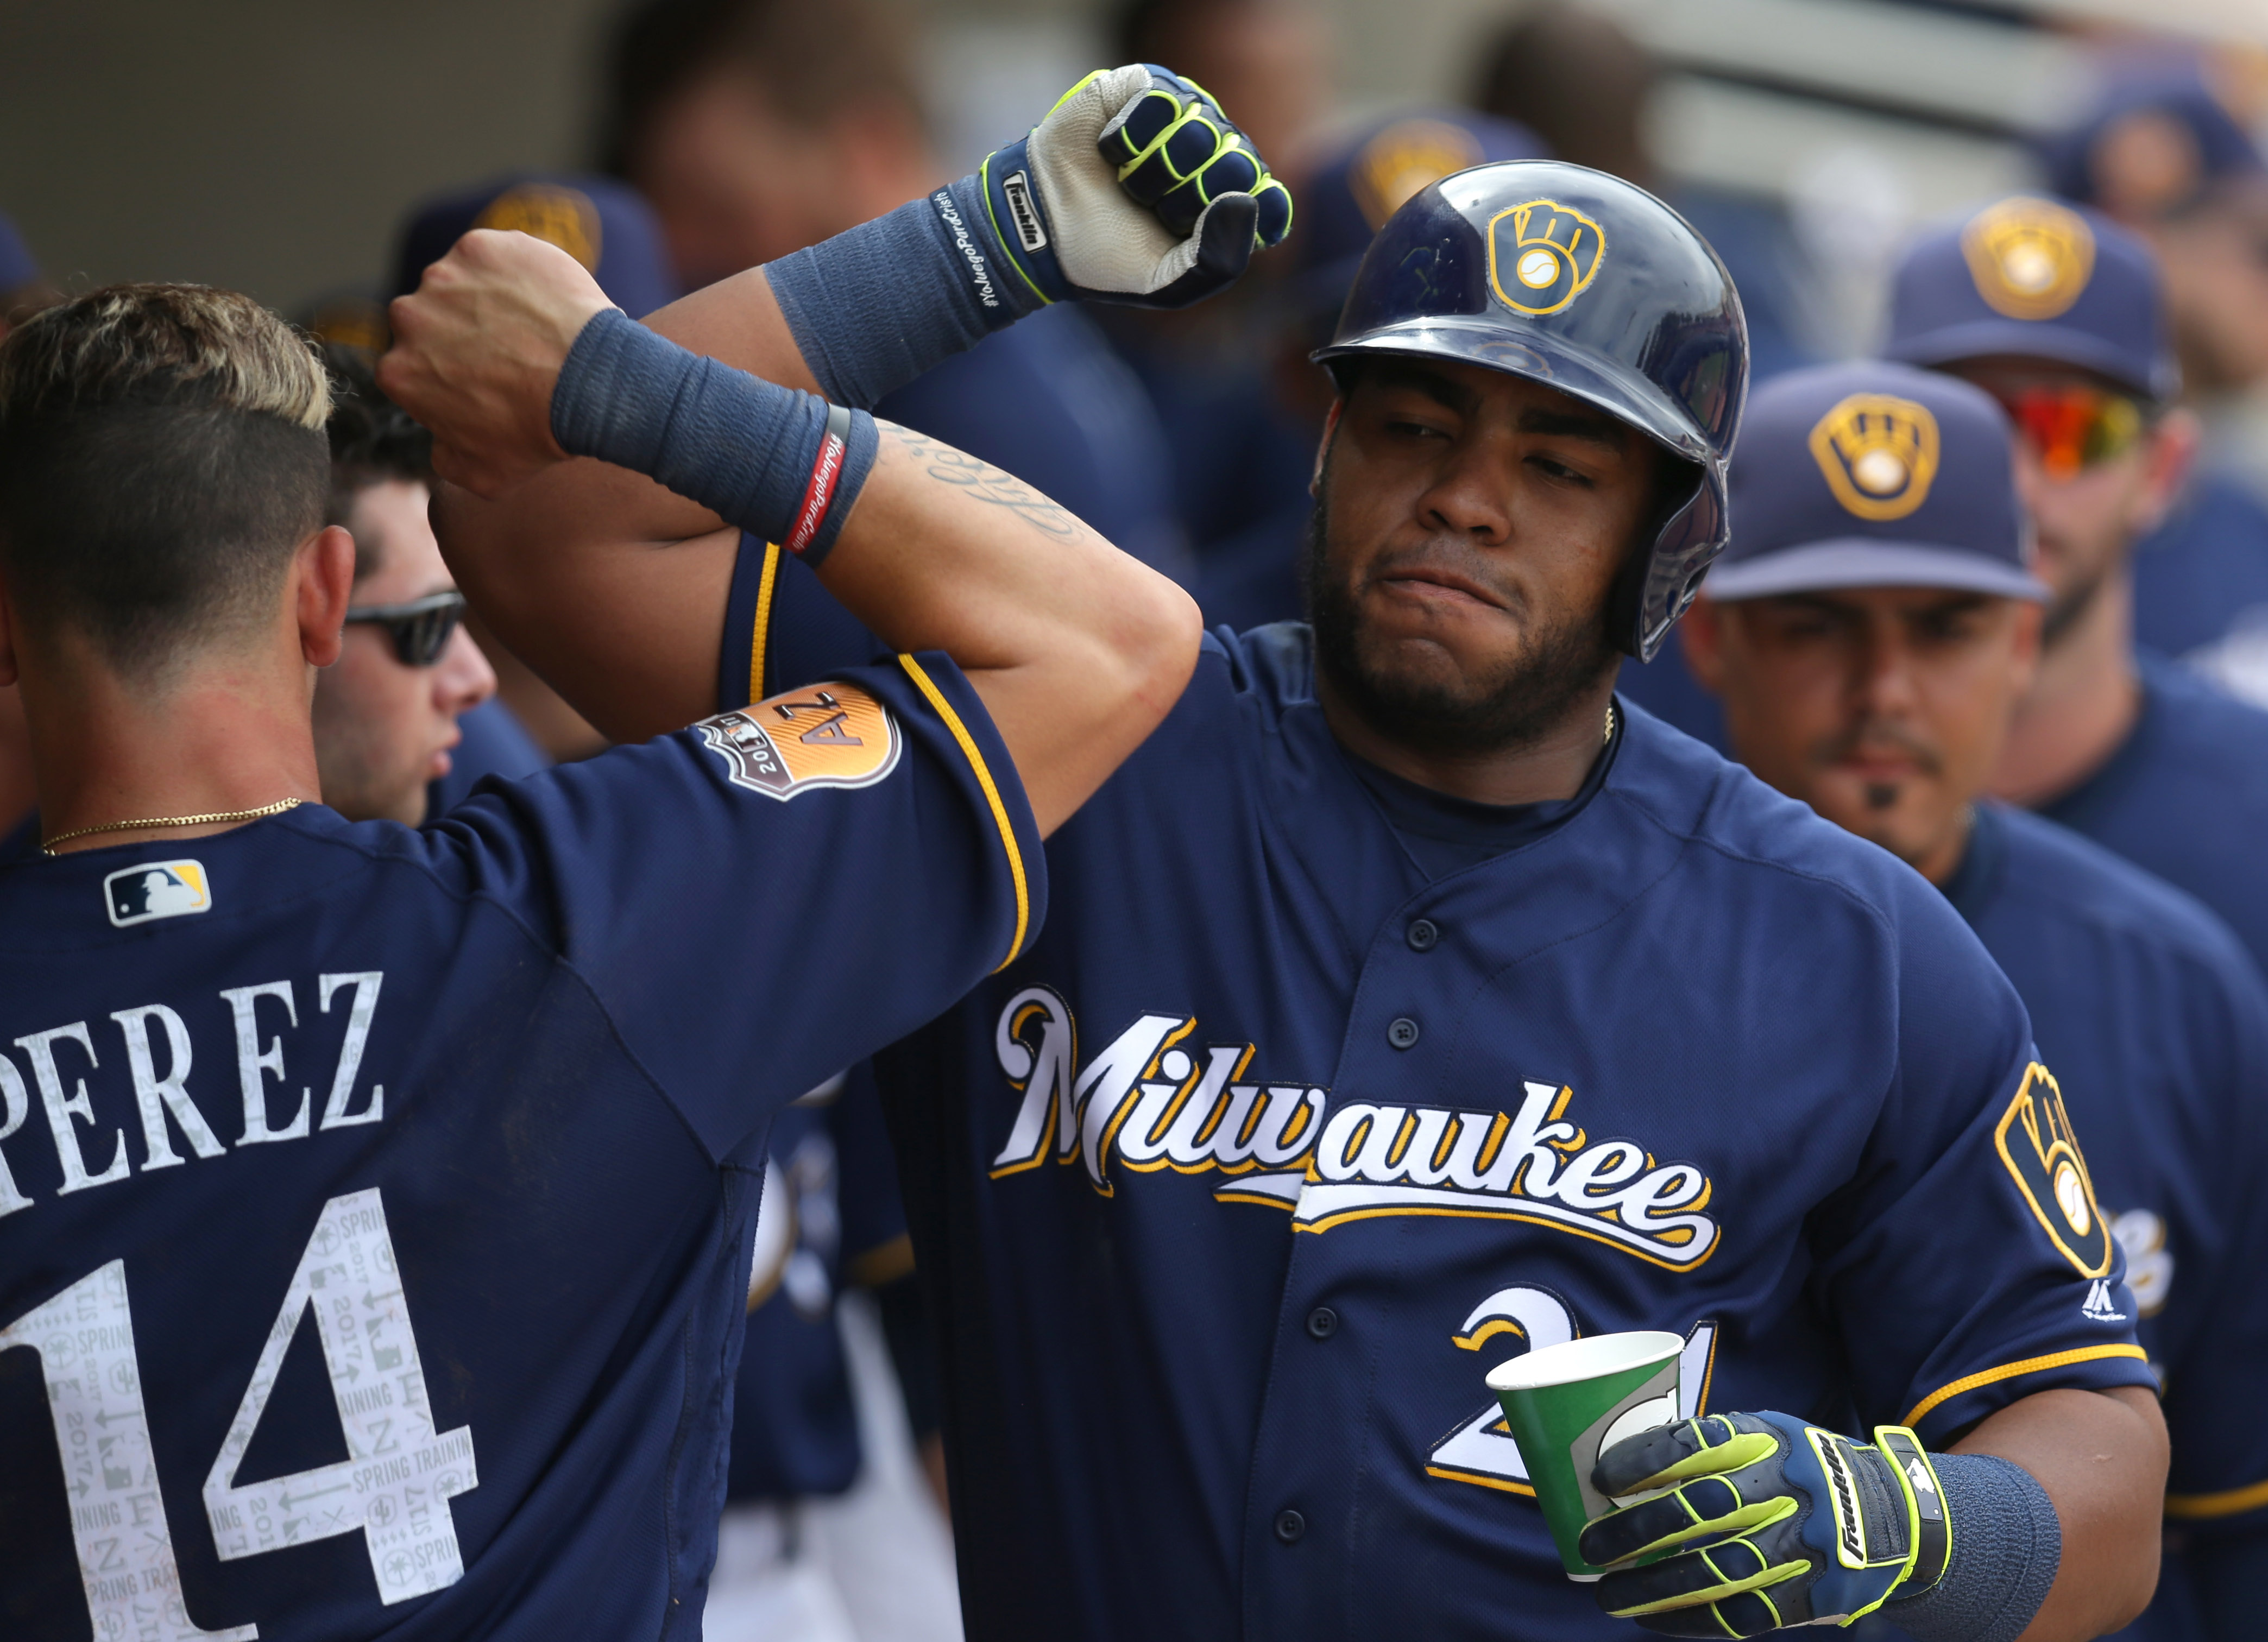 9964948-mlb-spring-training-san-francisco-giants-at-milwaukee-brewers